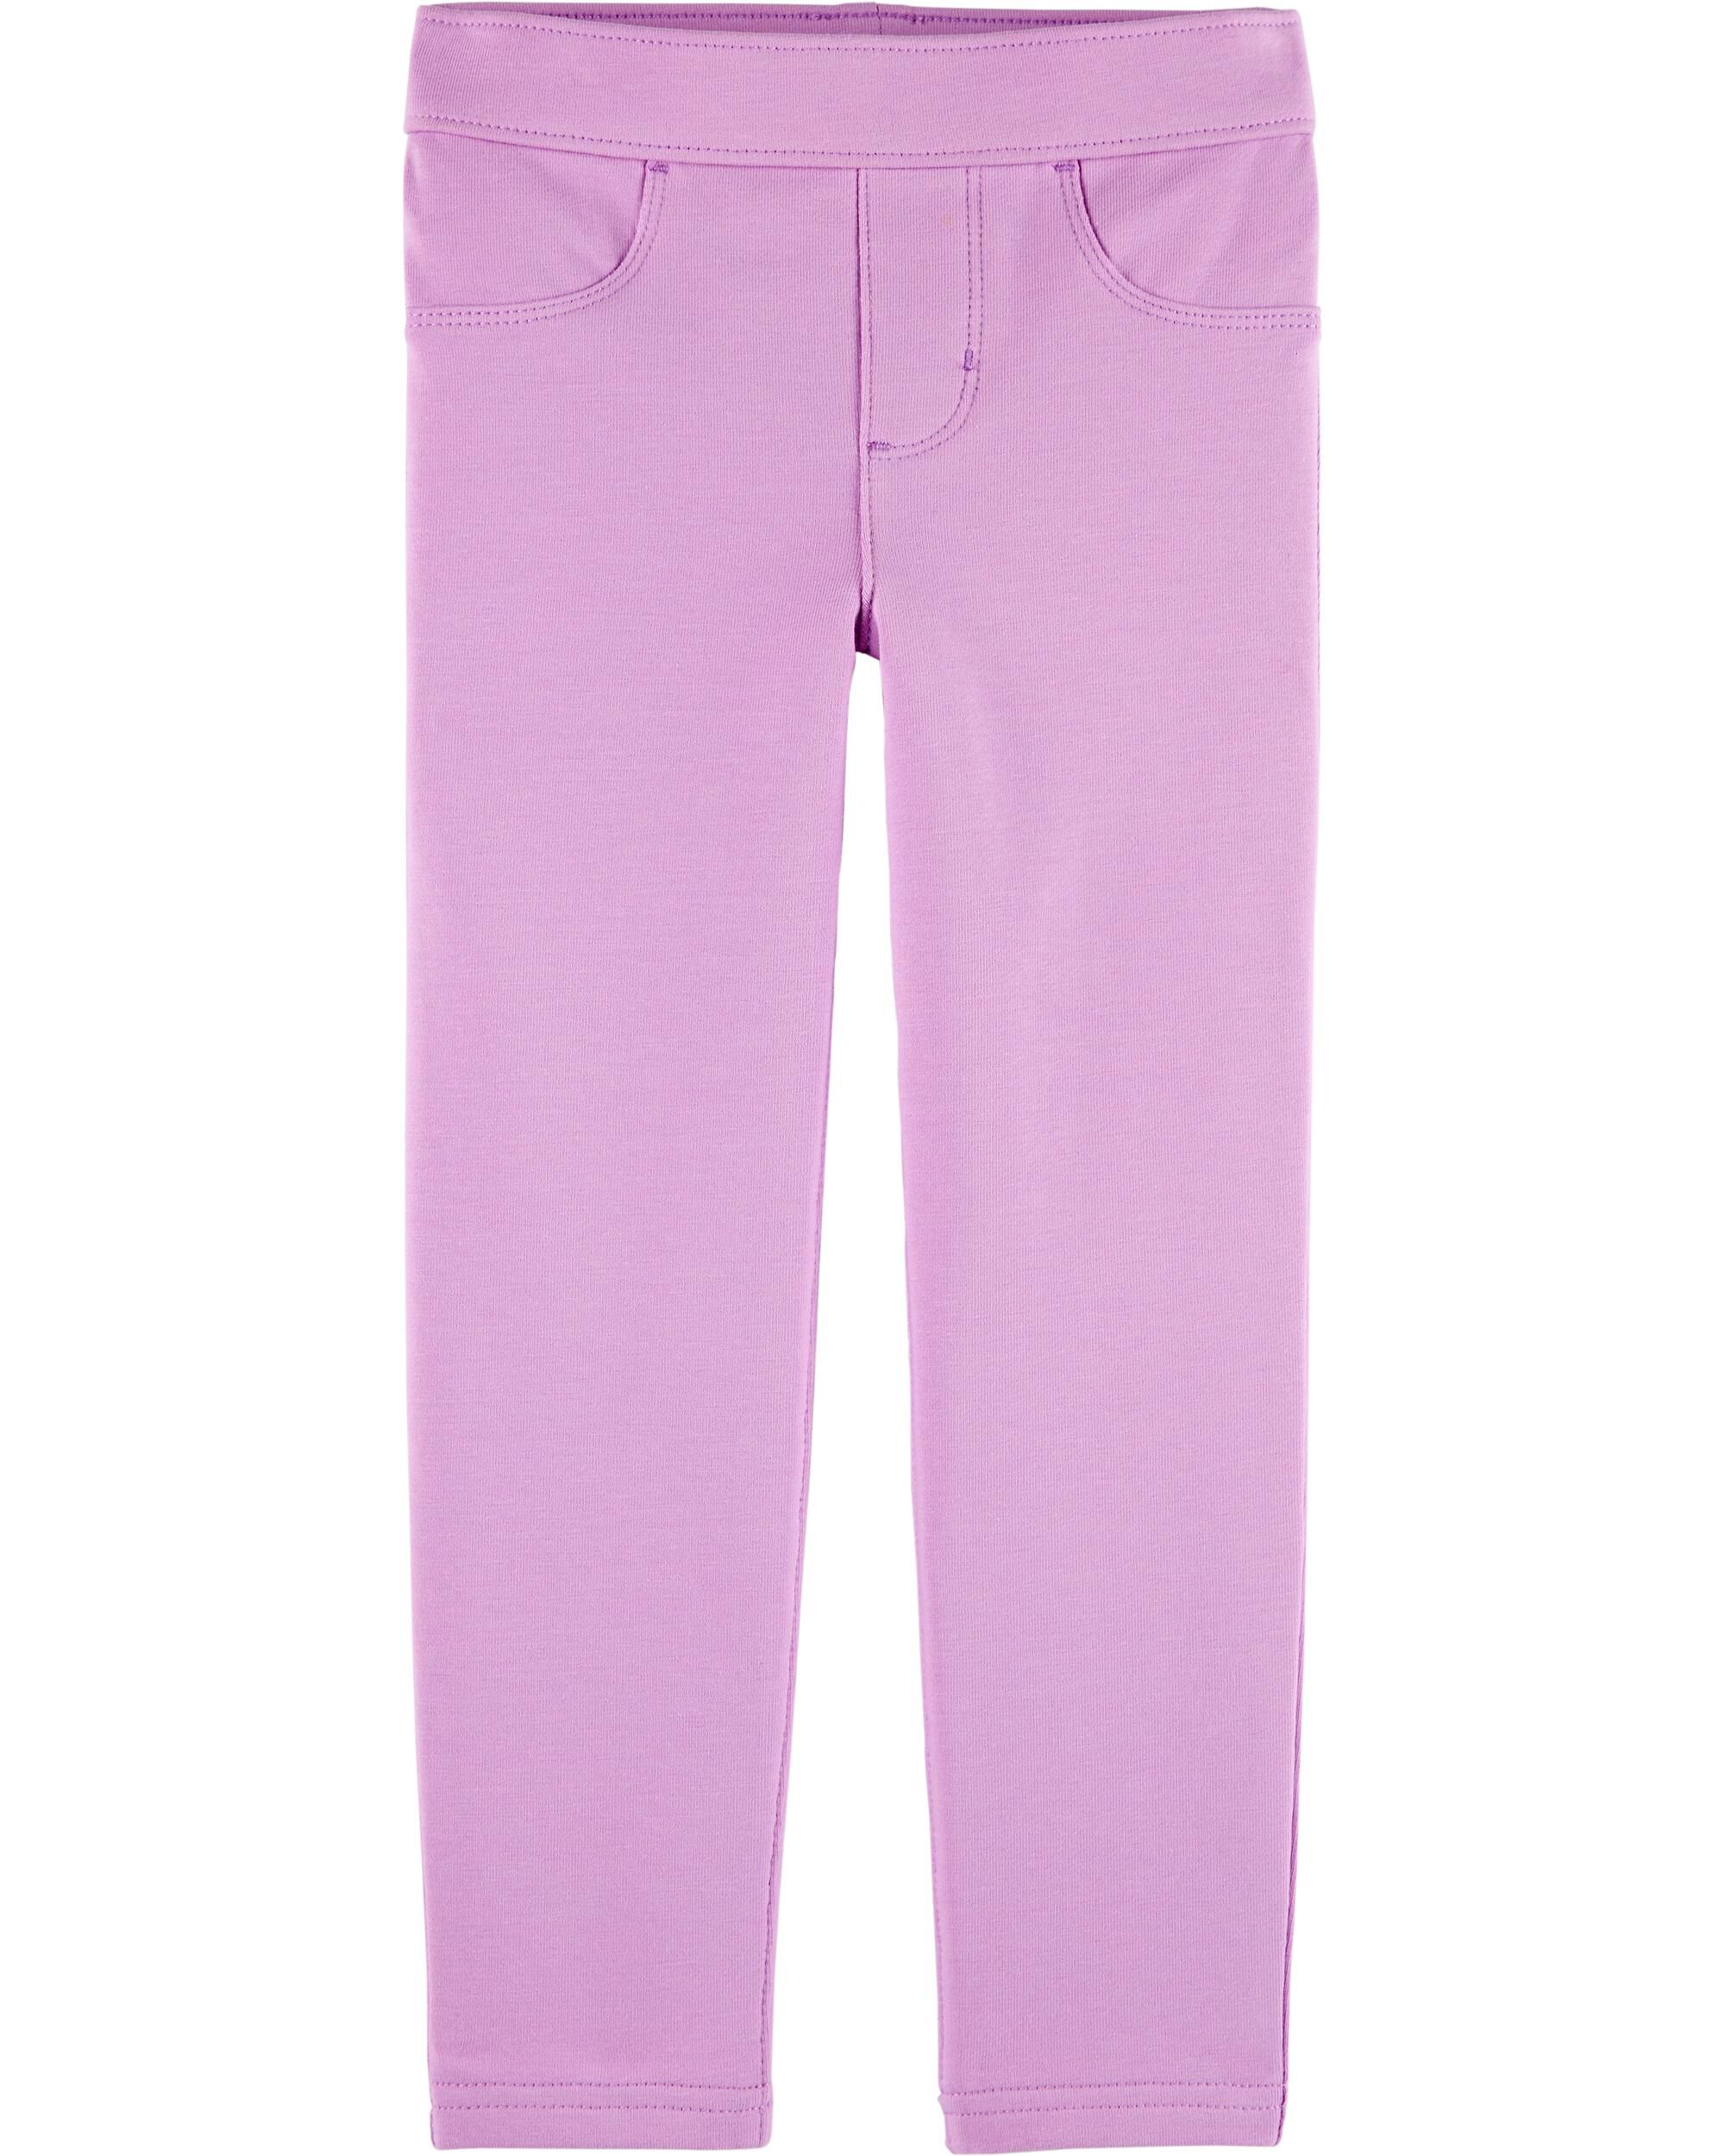 *Clearance*  French Terry Jeggings